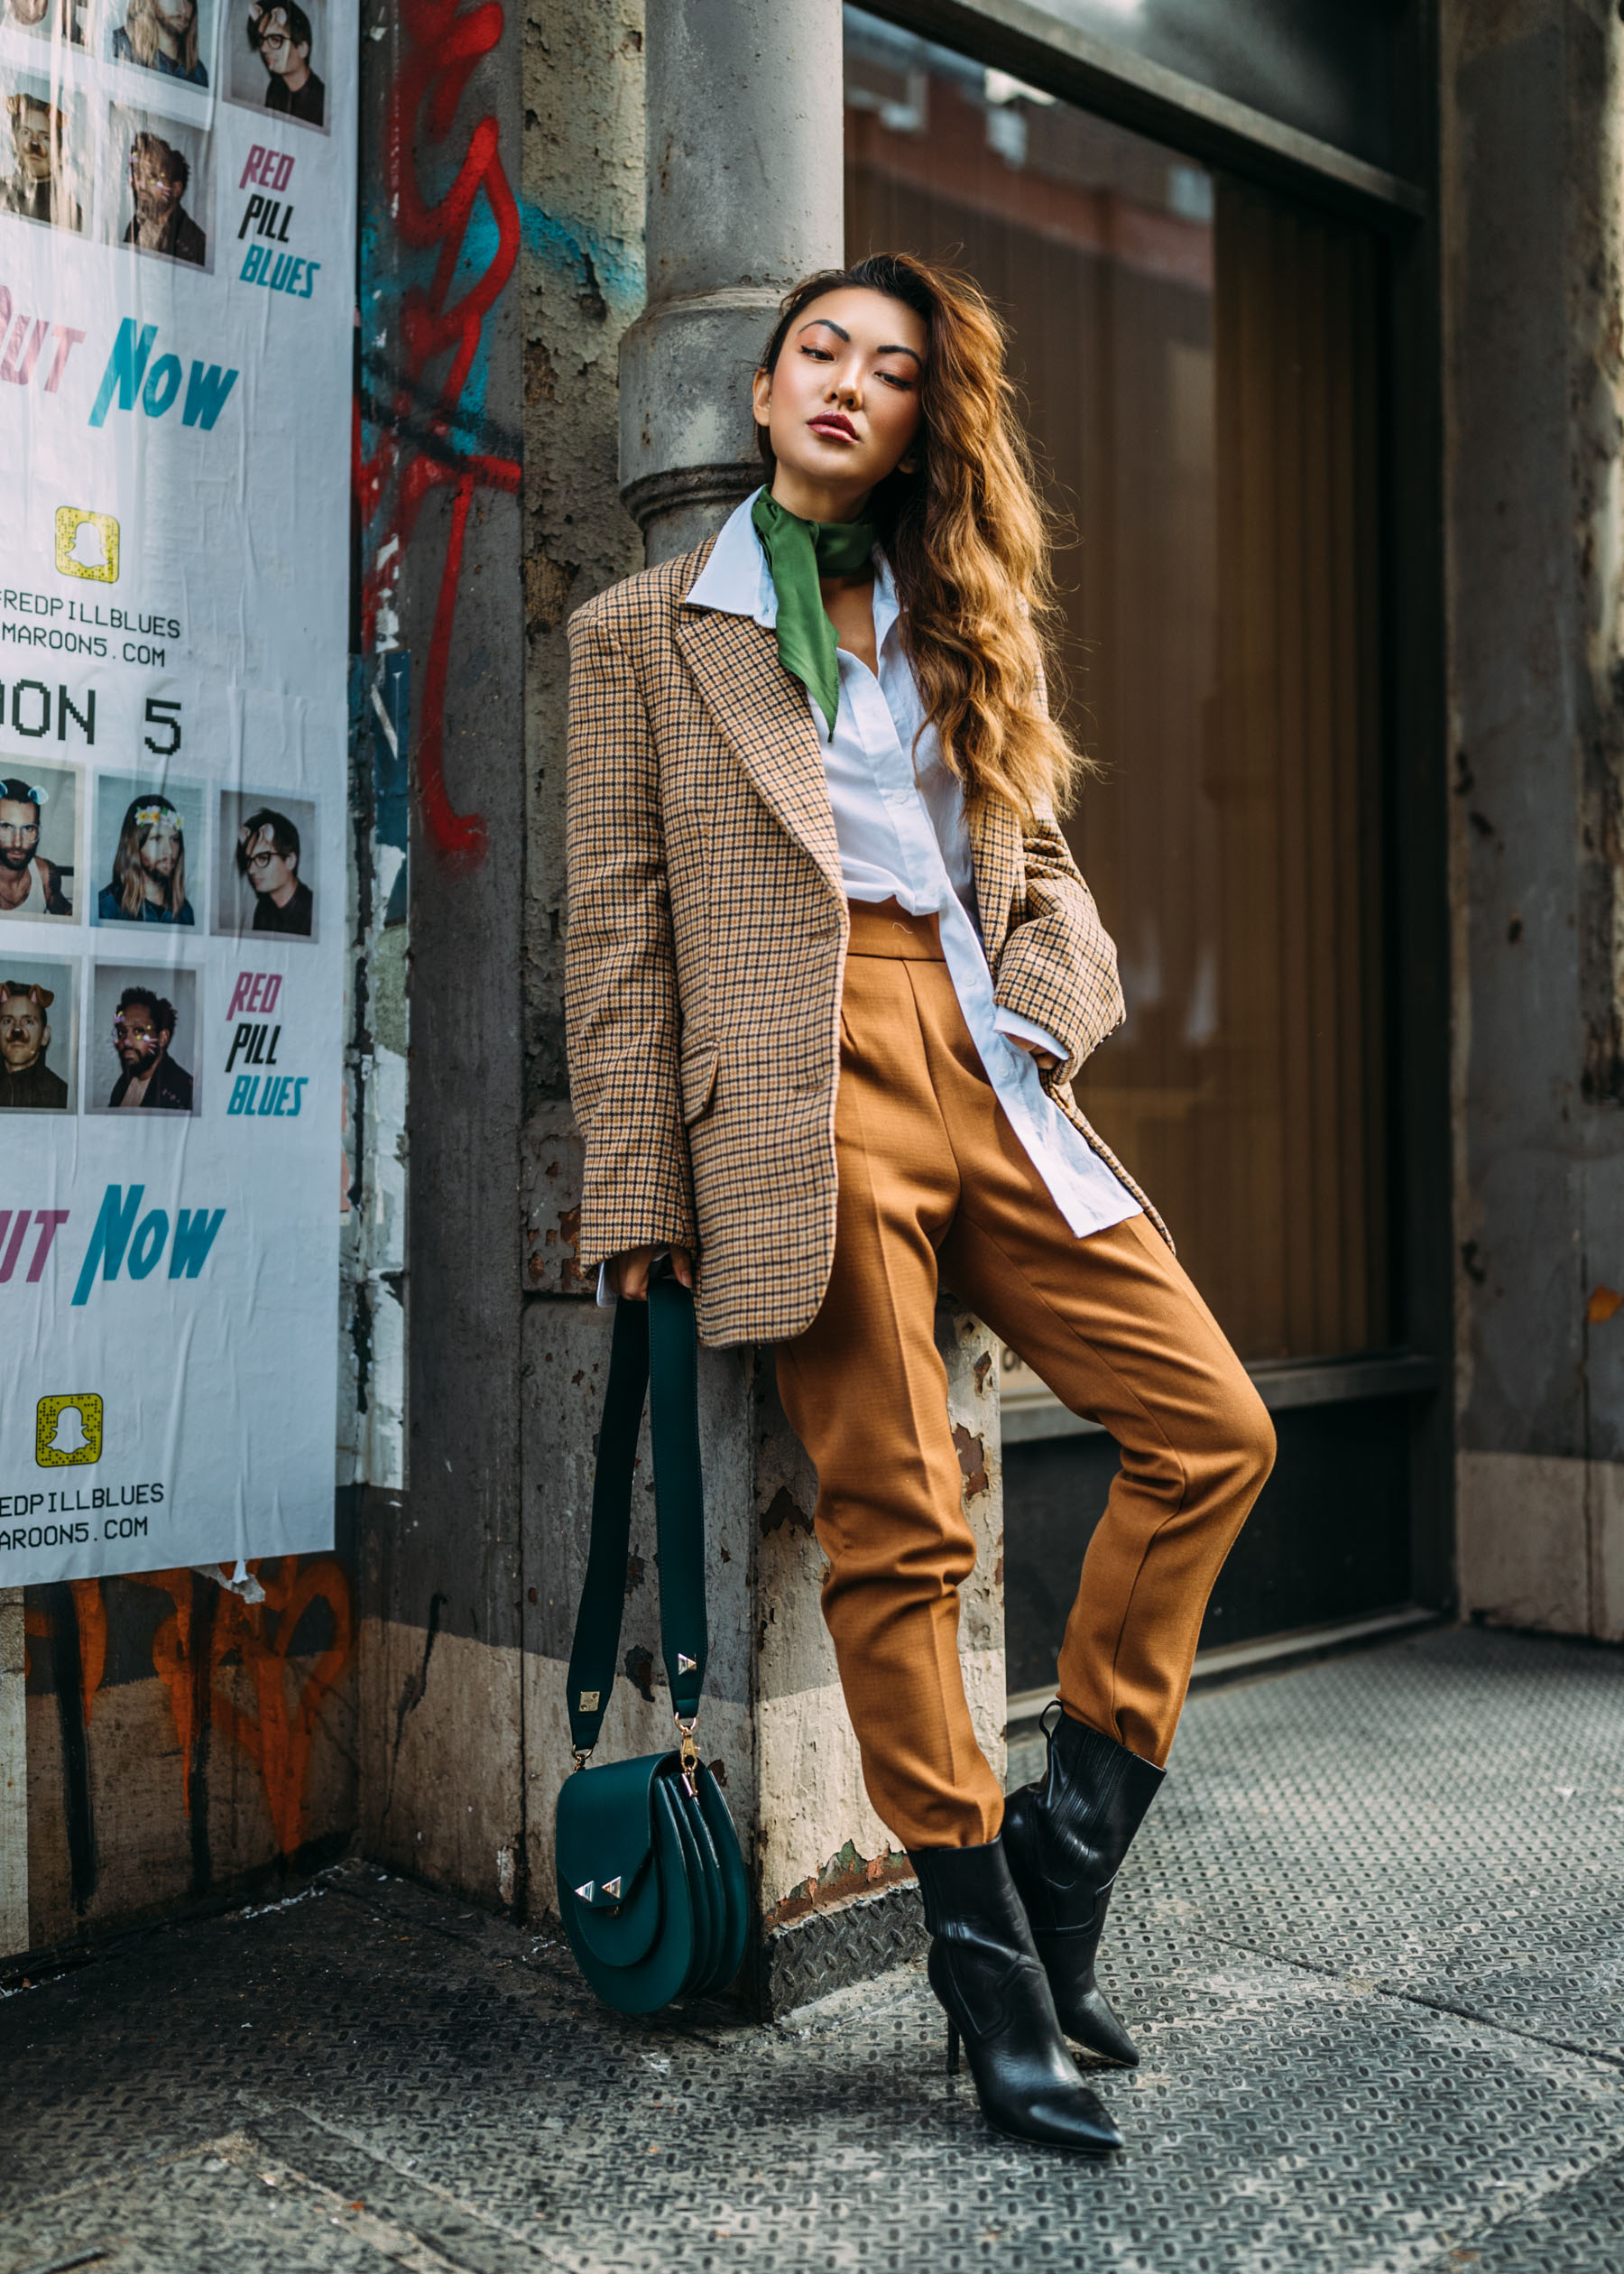 How to add color to your winter wardrobe with green - Green neck scarf with plaid blazer // Notjessfashion.com